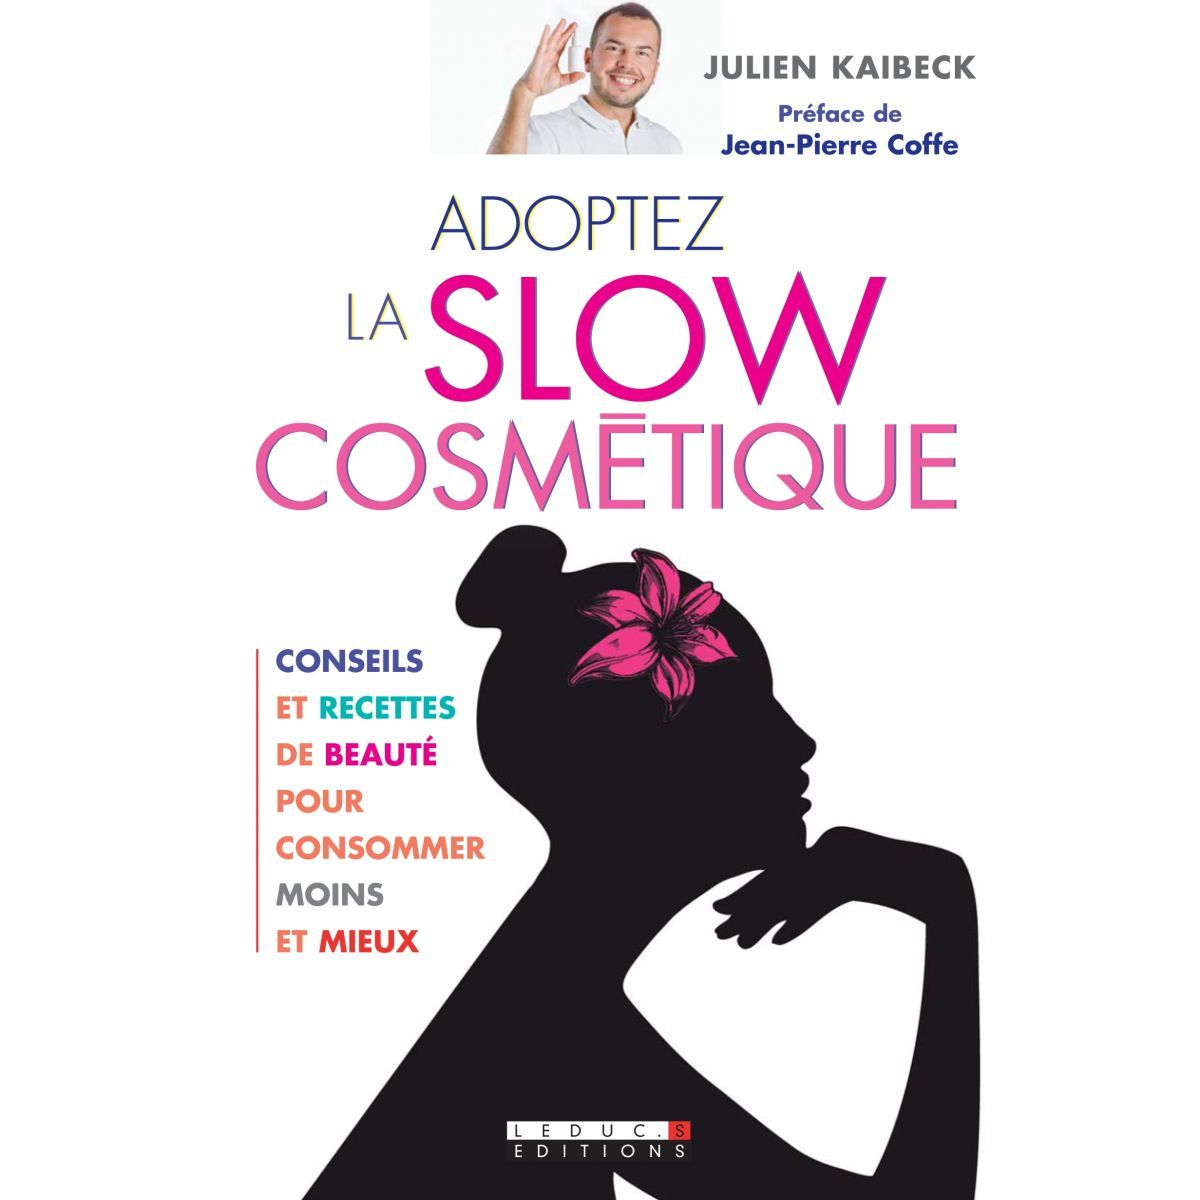 cosmetique julien